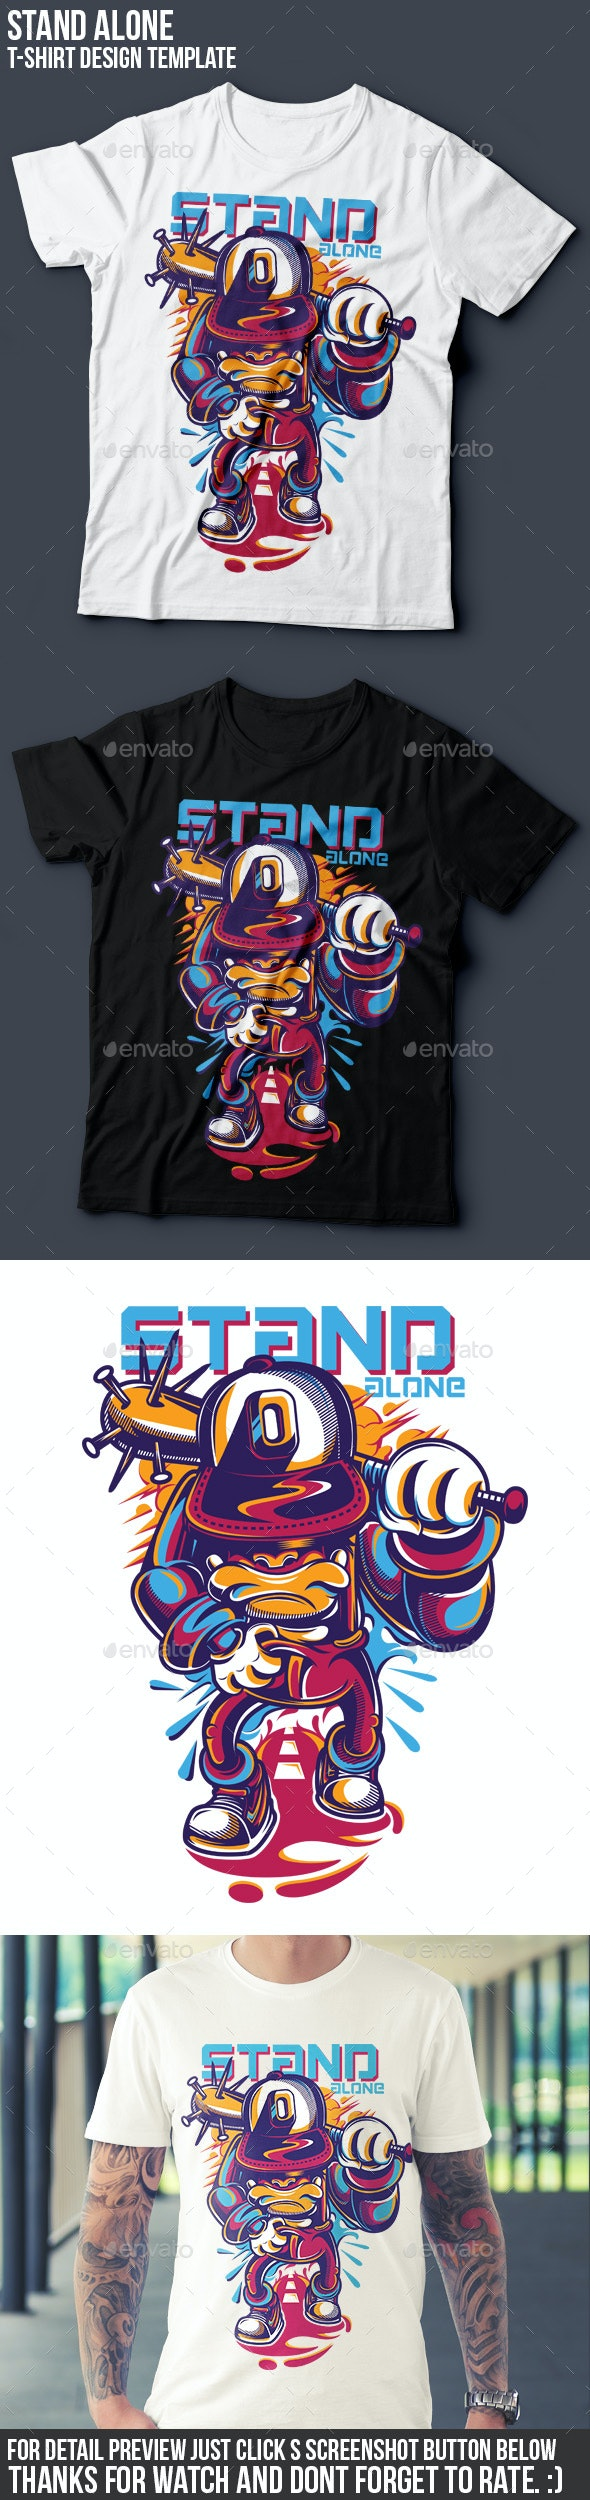 Stand Alone T-Shirt Design - Funny Designs